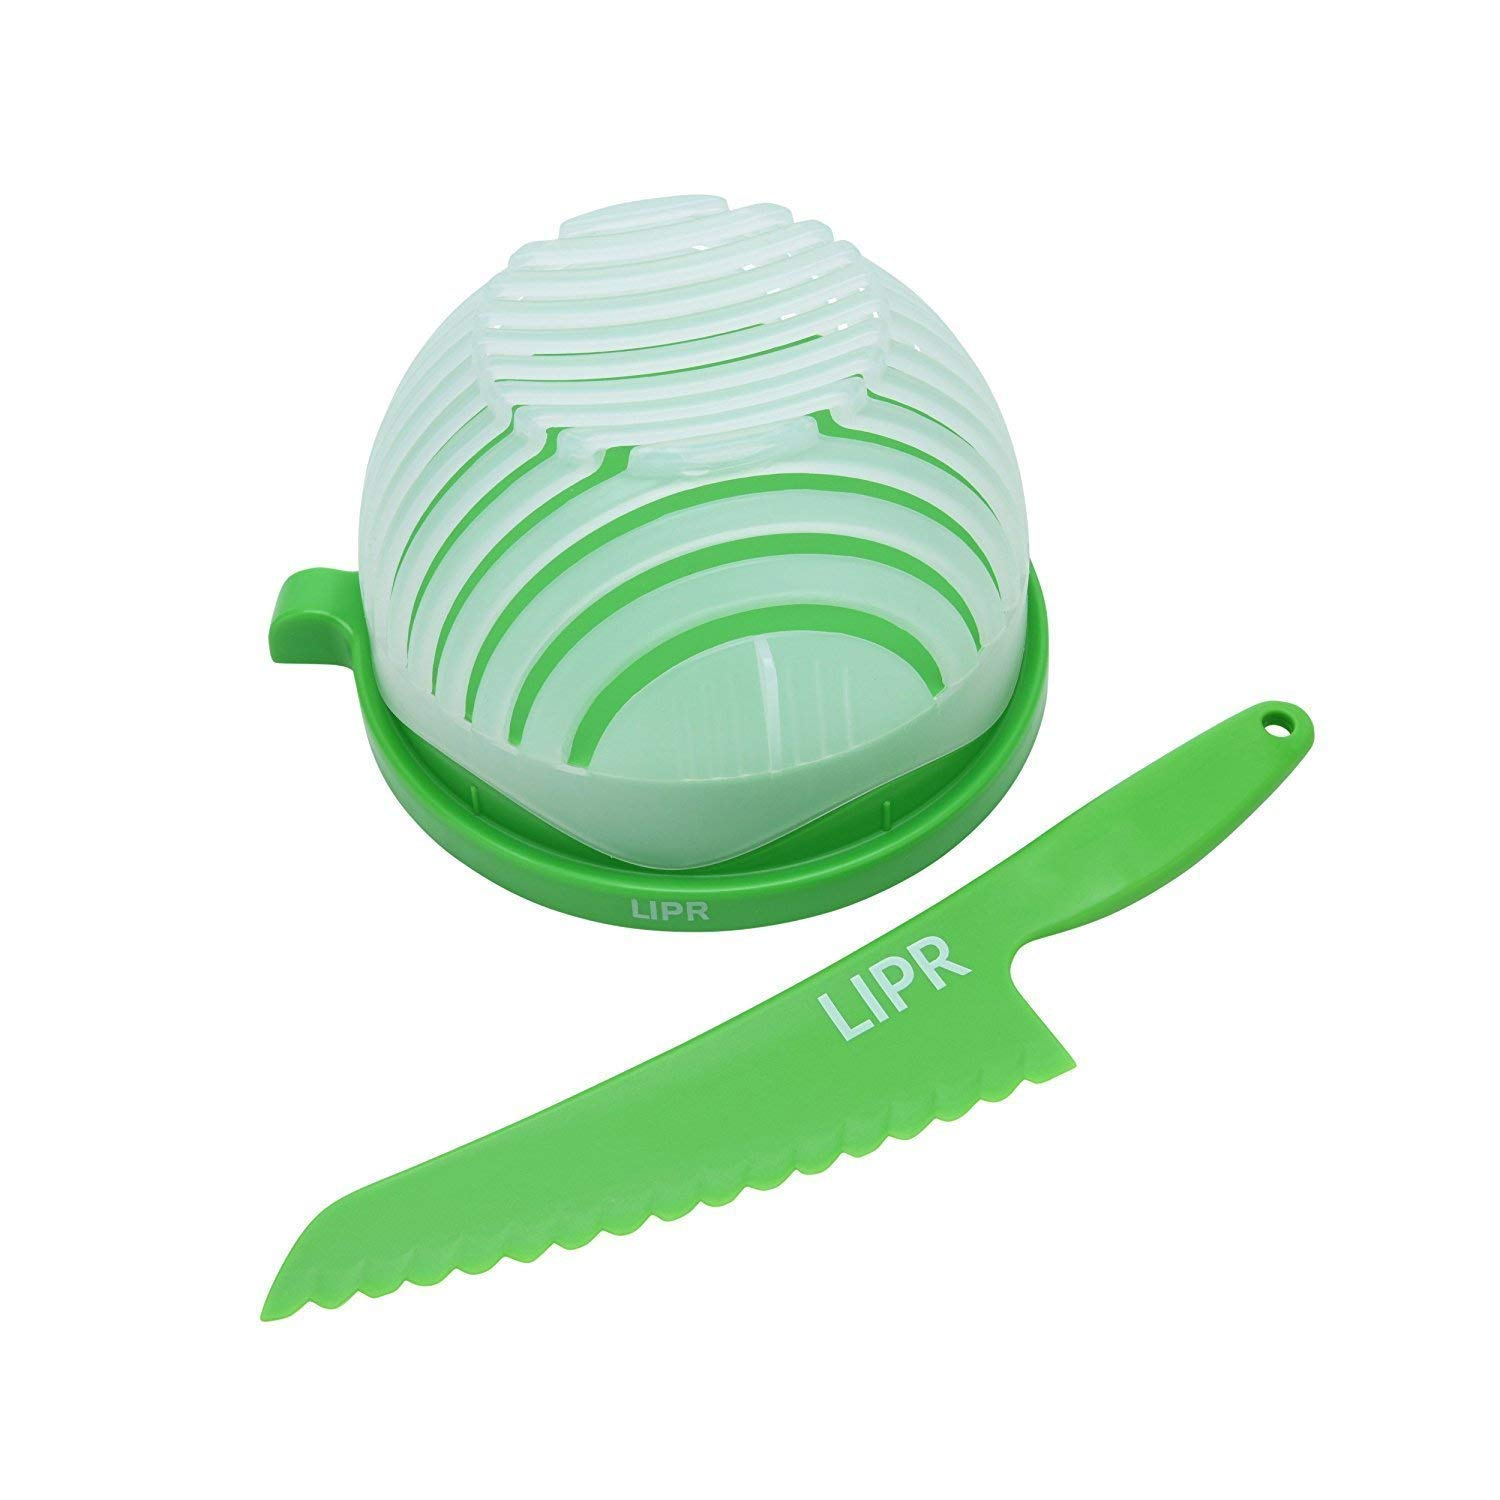 LIPR Large BPA Free Salad Cutter and Bowl with Lettuce Knife Cuts Fruits and Vegetables in Seconds